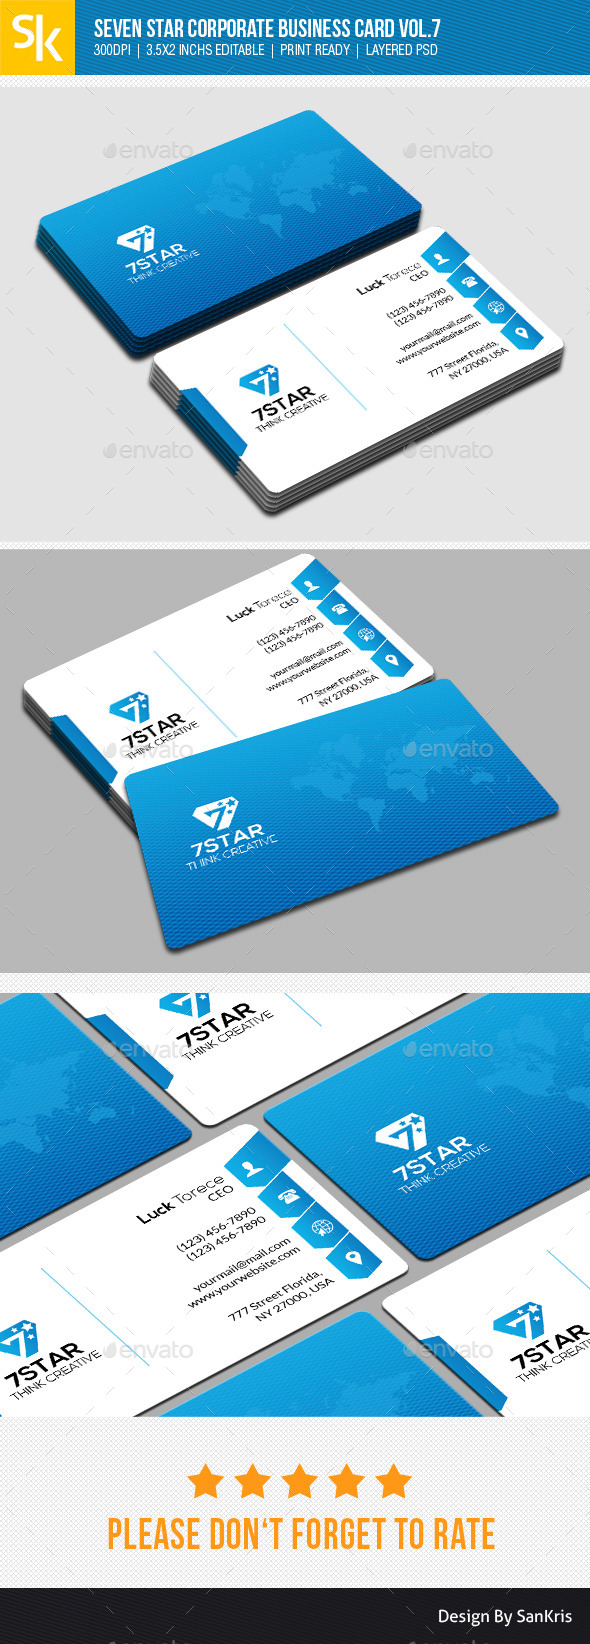 GraphicRiver Seven Star Corporate Business Card Vol.7 10942841